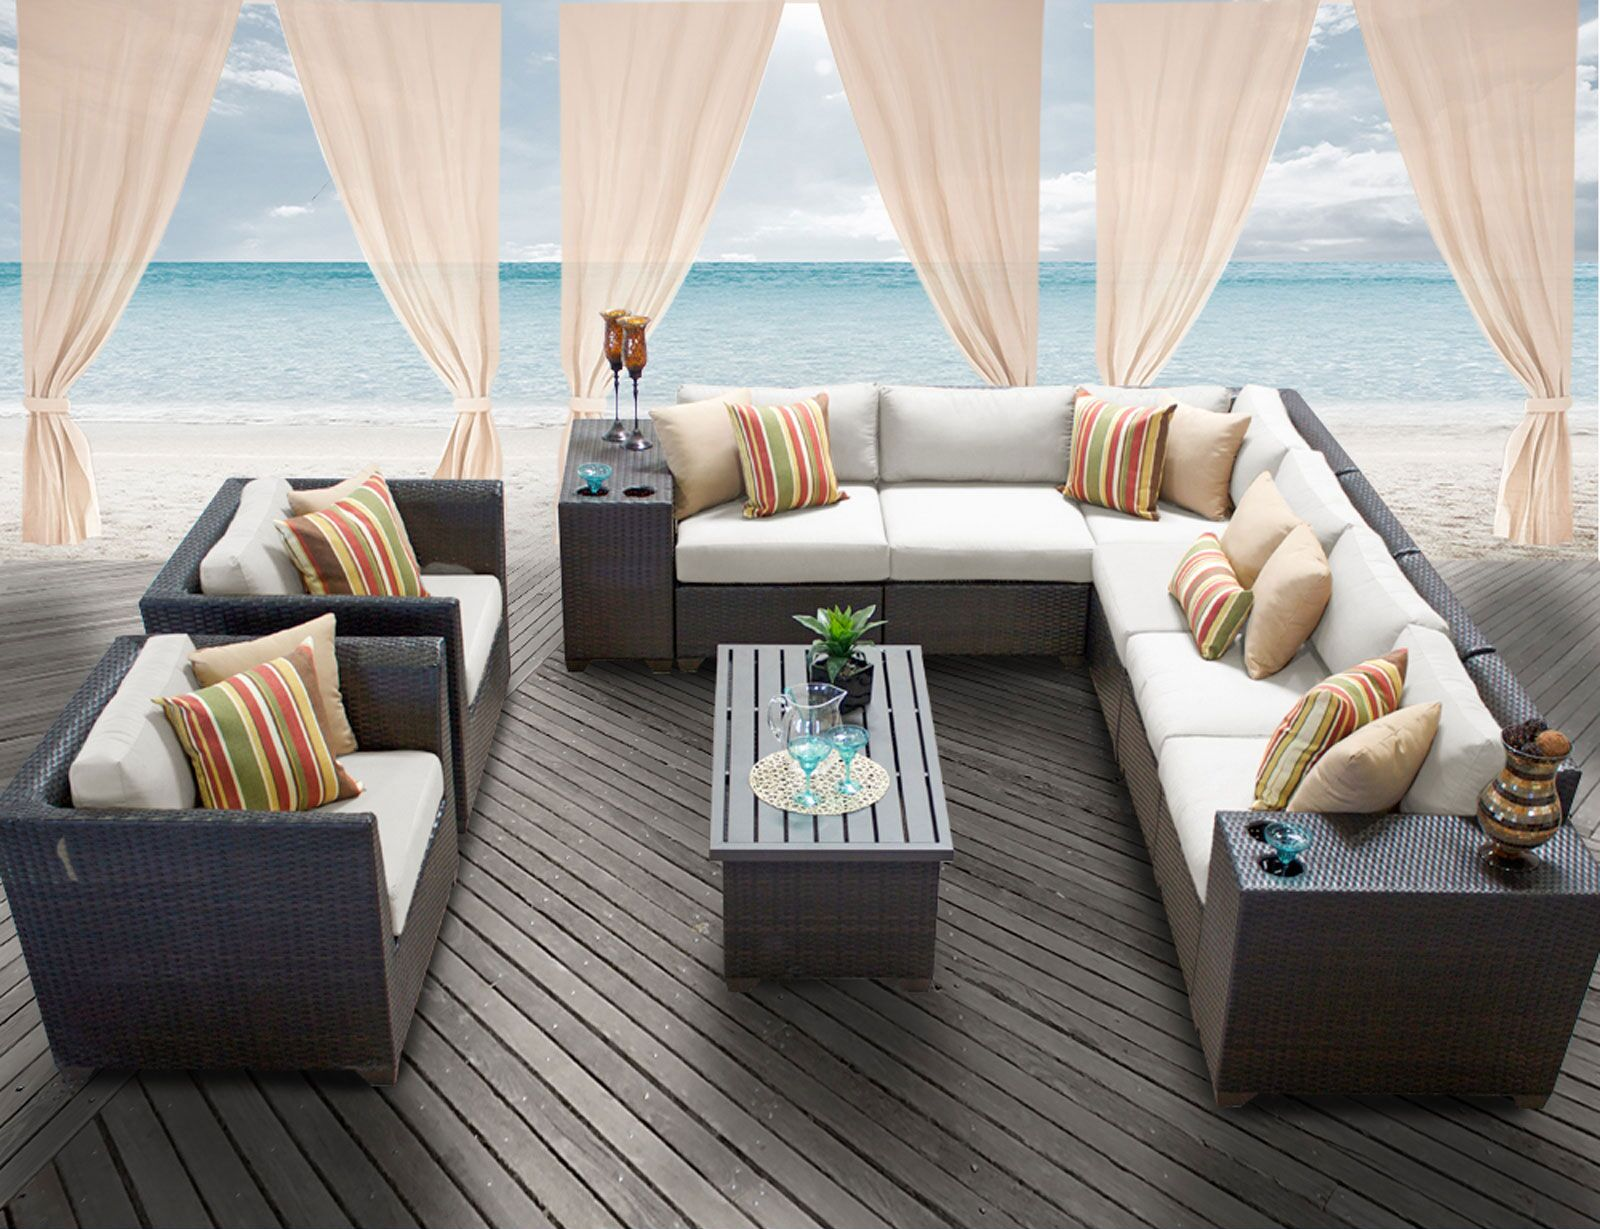 Barbados 11 Piece Rattan Sectional Set with Cushions Color: Beige